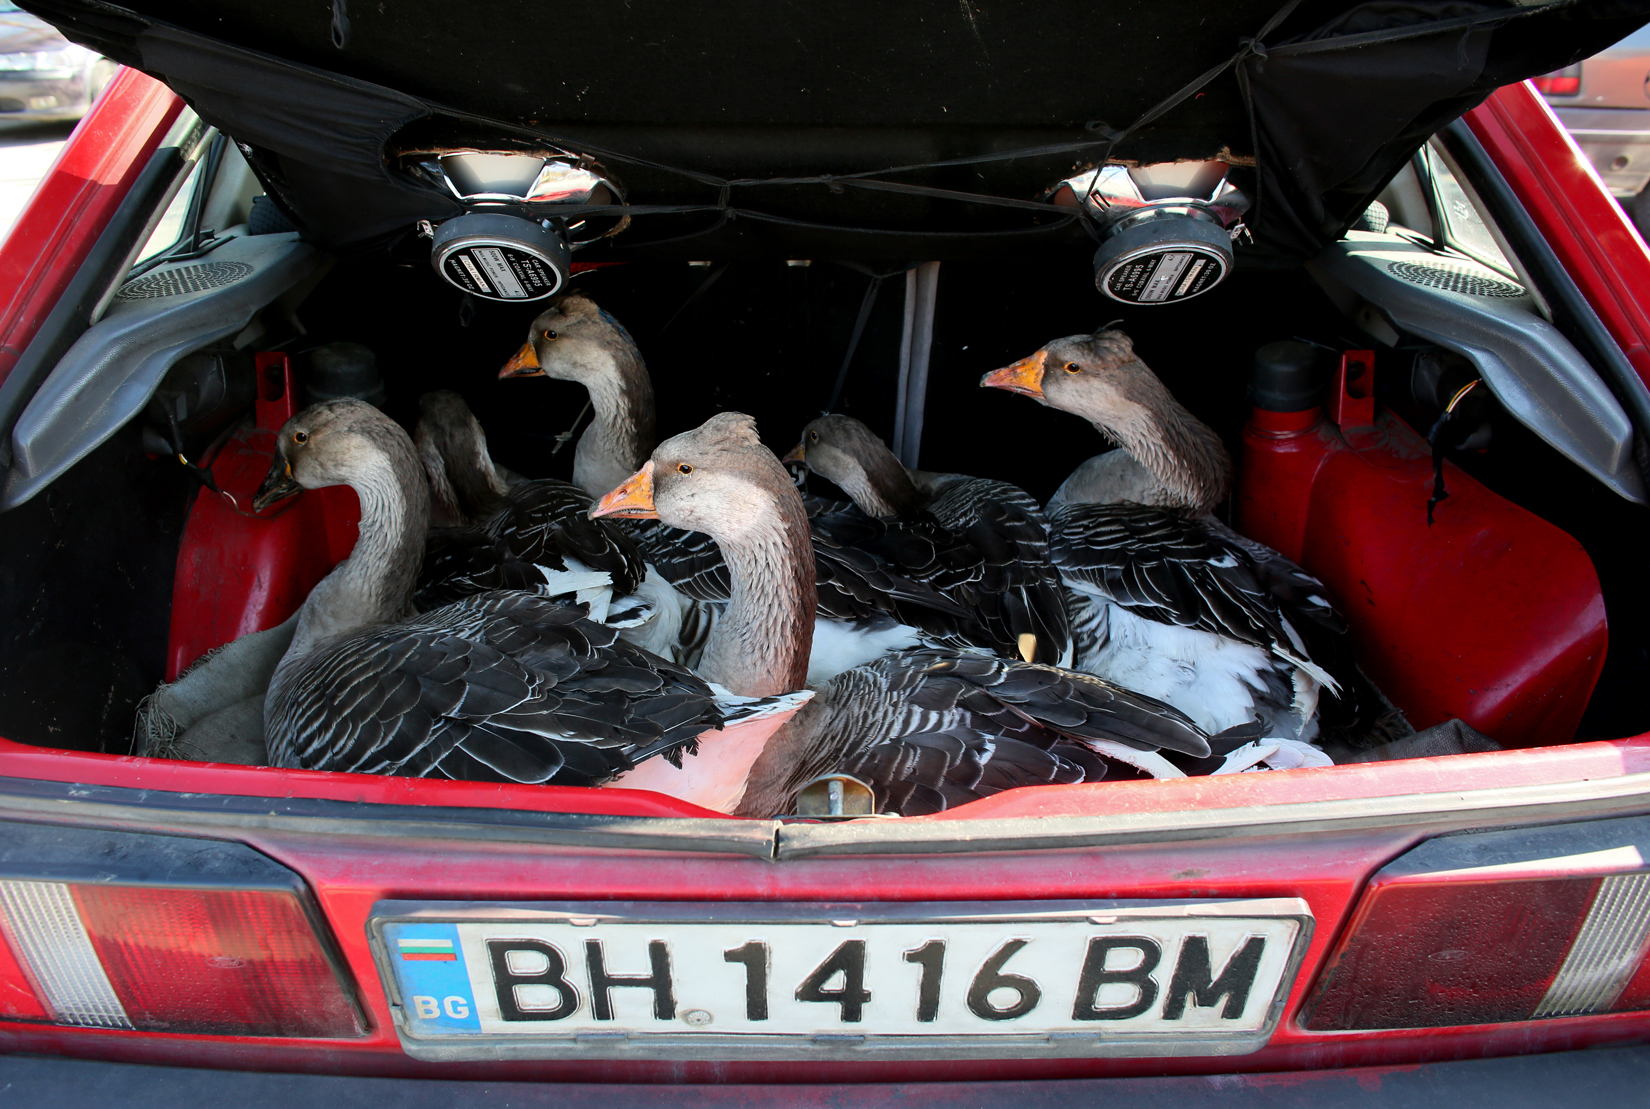 A woman sells geese from the trunk of her car, at an outdoor market in Vidin, Bulgaria on October 18th, 2014. Many Bulgarians sell personal belongings, fruit and vegetables grown at home, or resell goods as a supplement to their primary earnings.